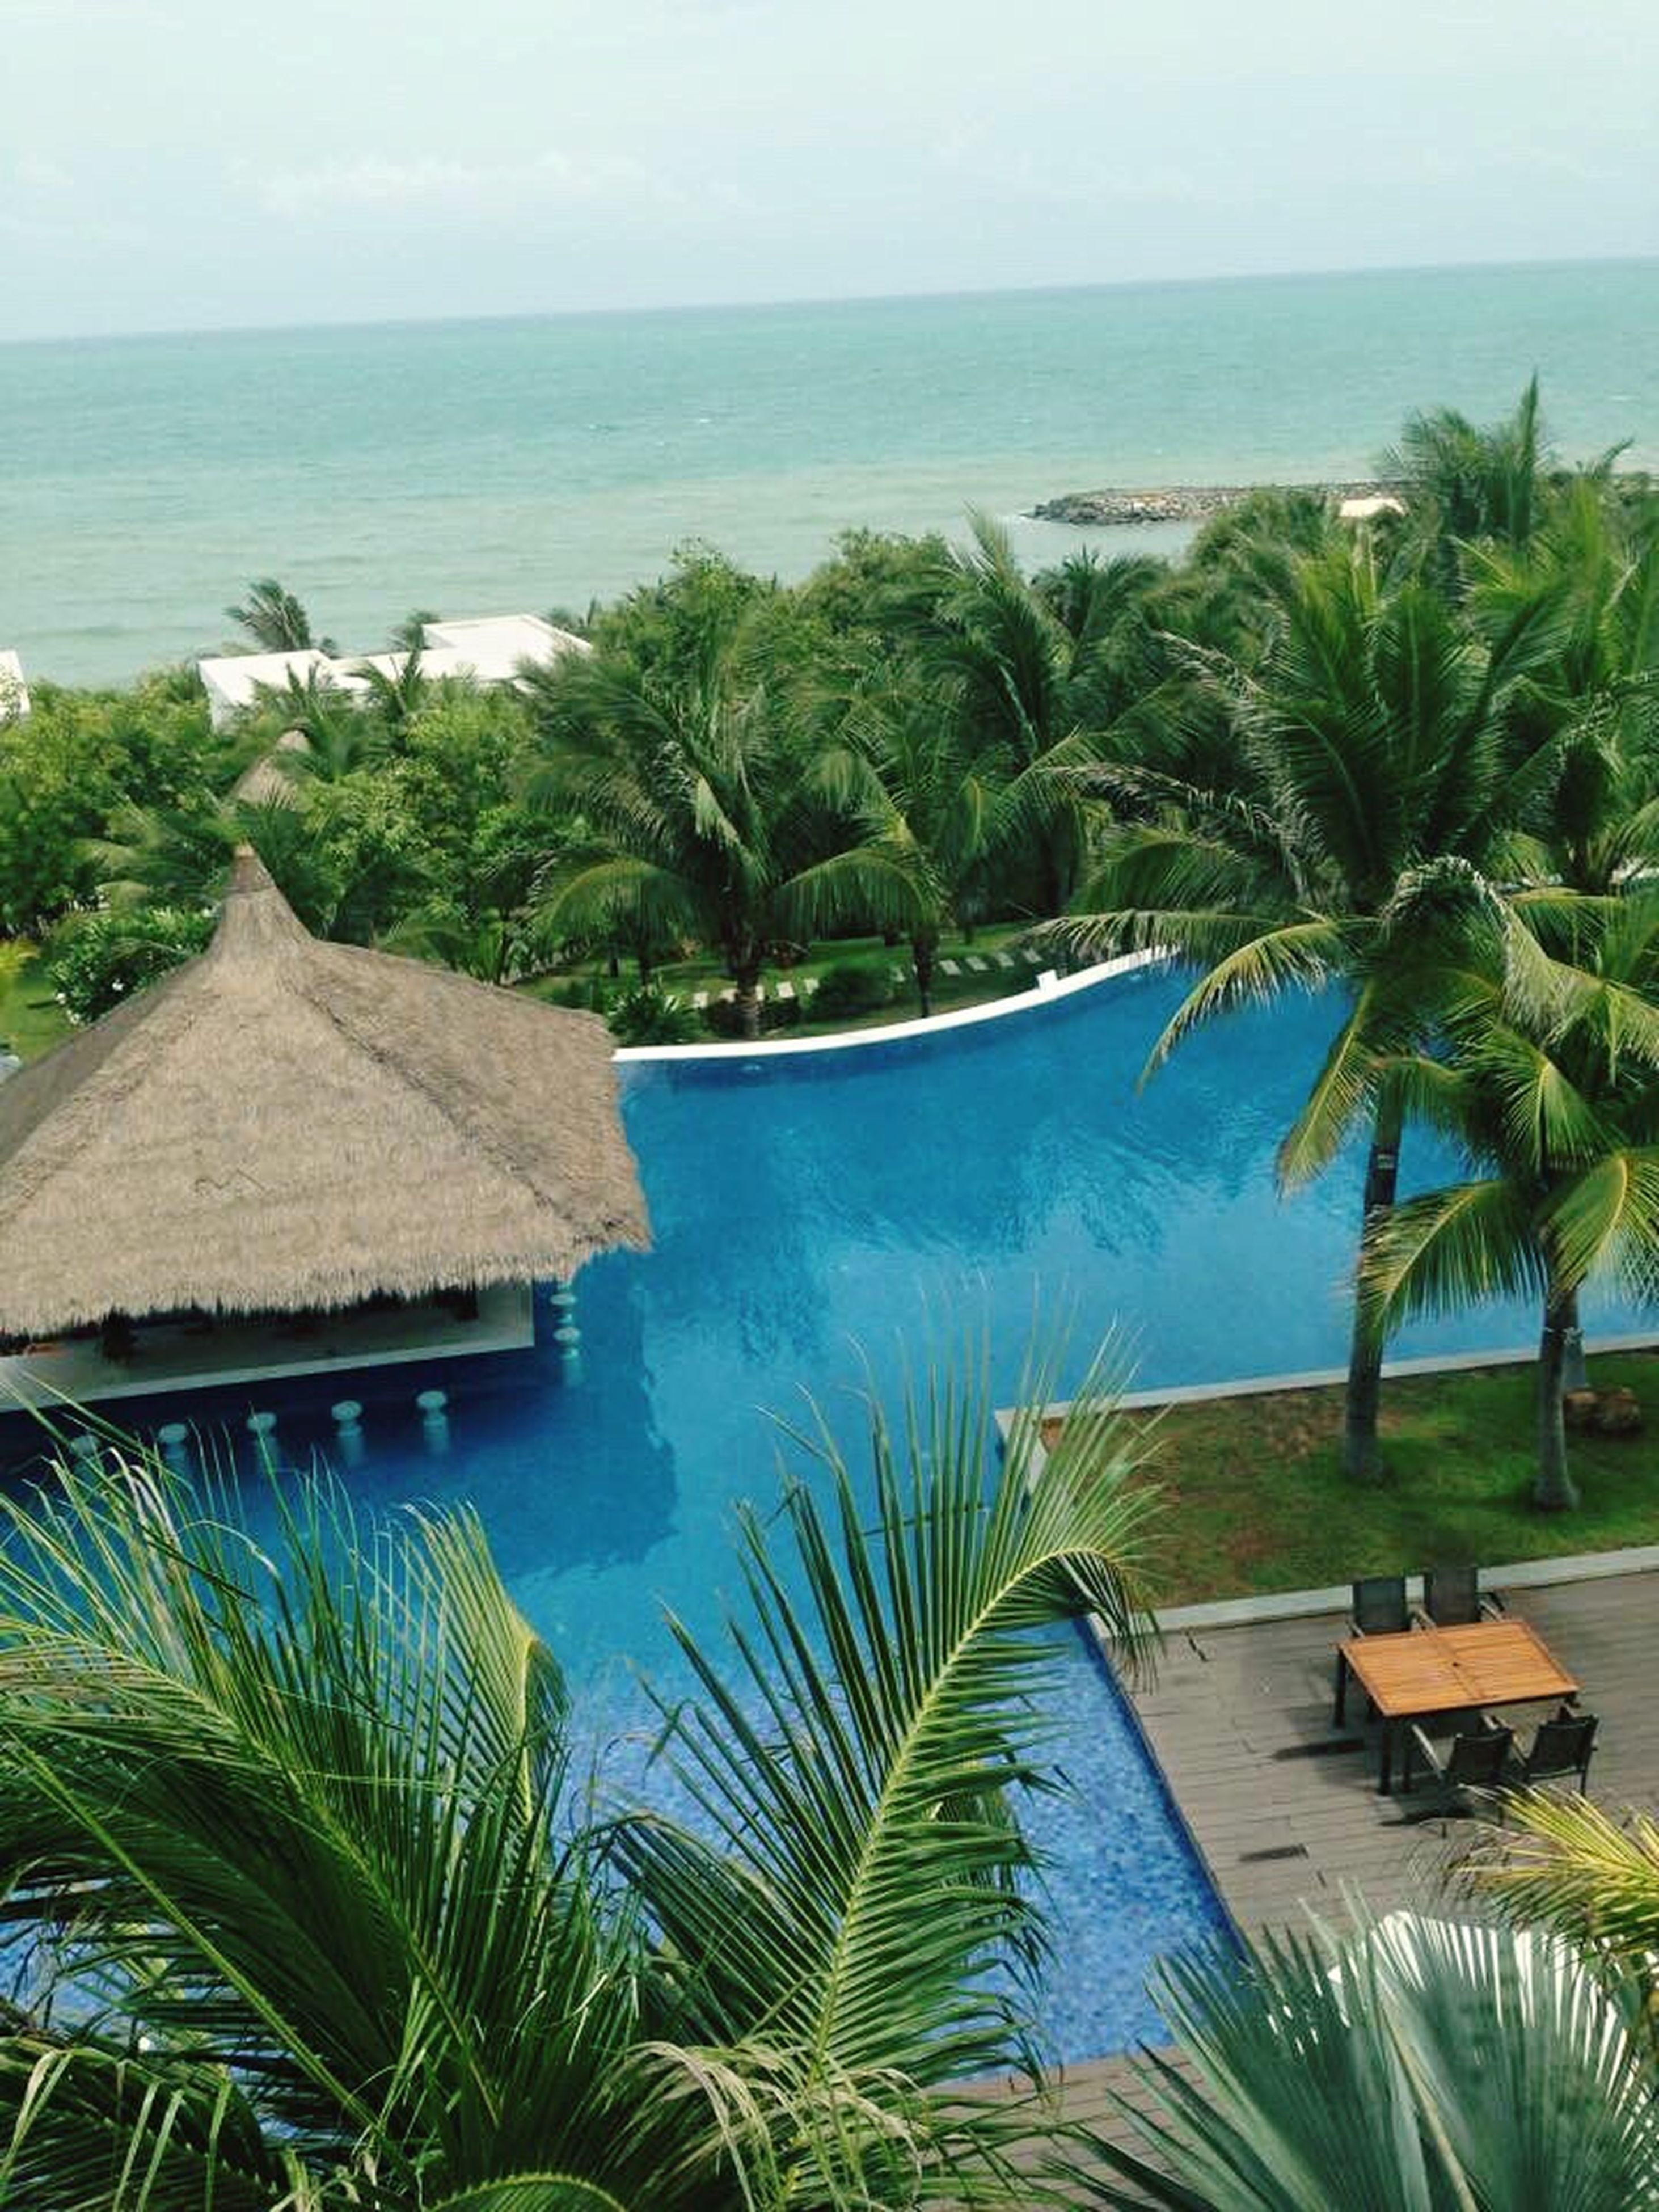 sea, scenics, water, horizon over water, beauty in nature, tree, tranquil scene, blue, tranquility, nature, palm tree, idyllic, no people, sky, clear sky, day, swimming pool, thatched roof, vacations, outdoors, beach, infinity pool